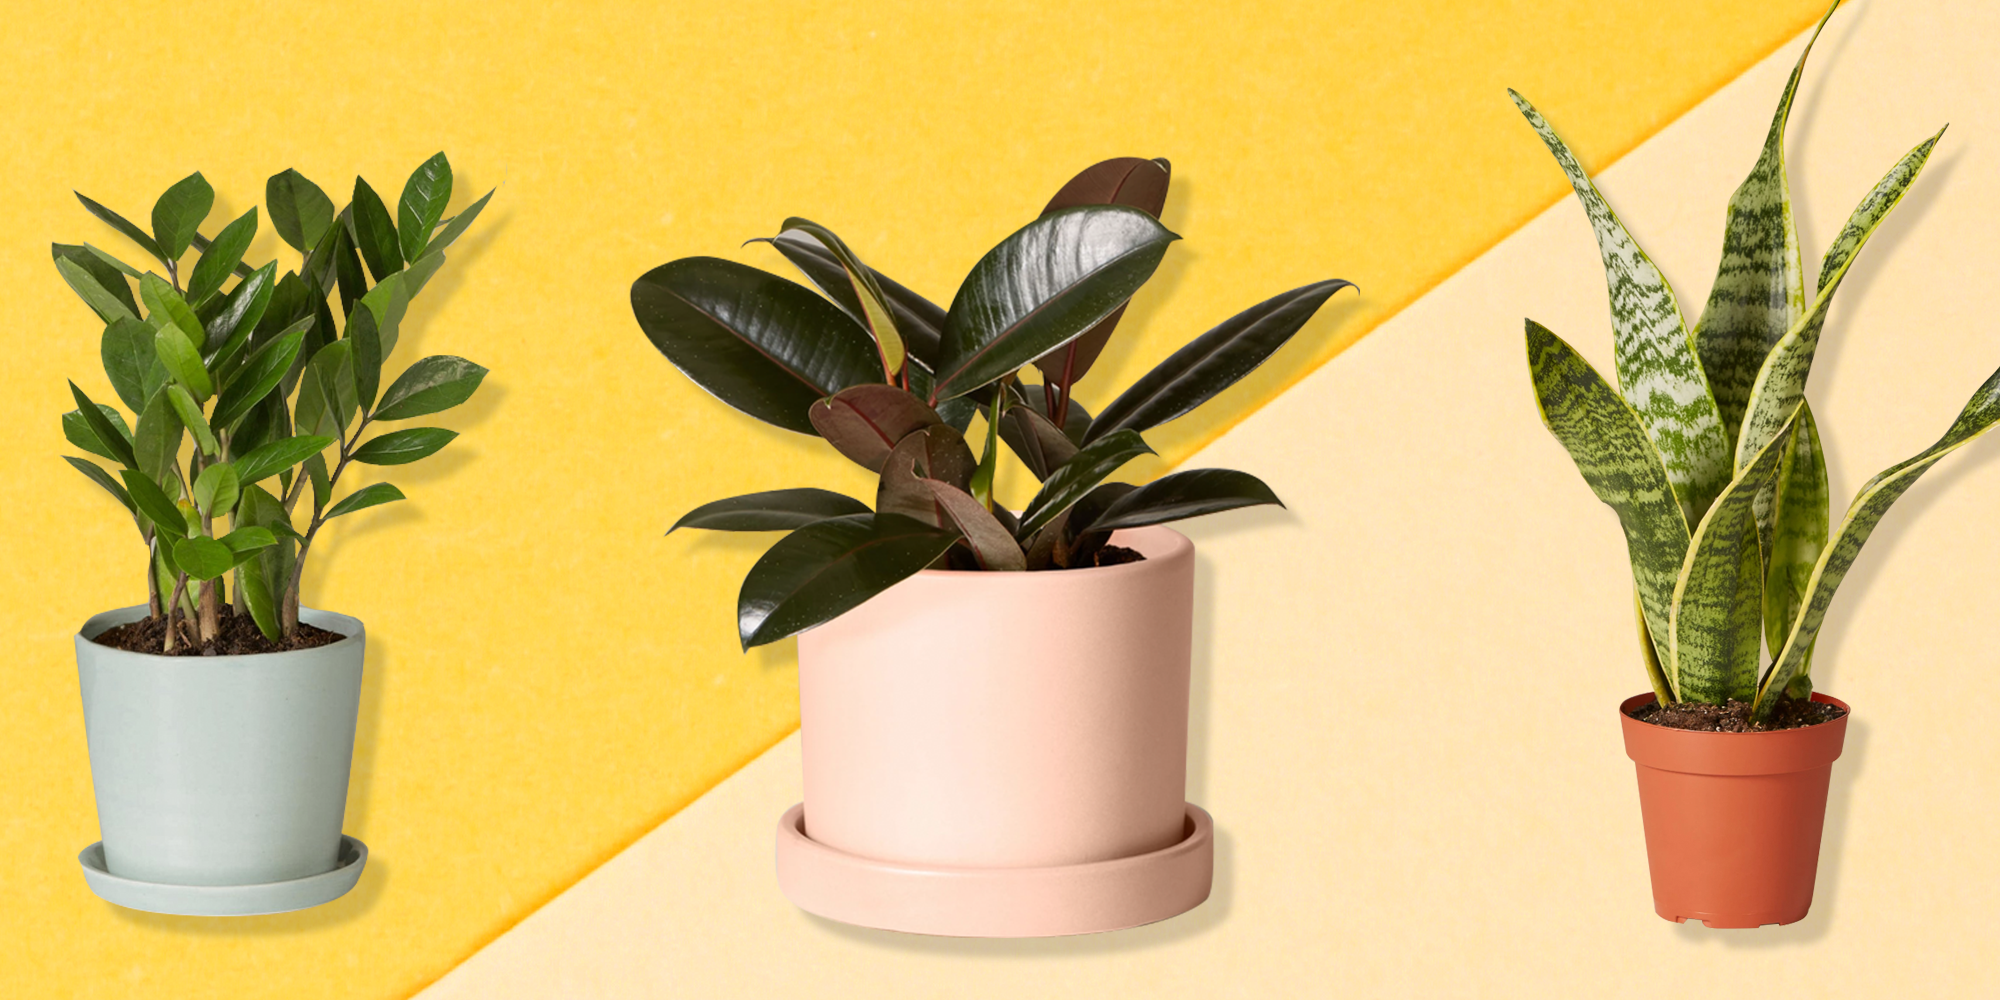 10 Best Air-Purifying Plants For A Healthier Home, According To Experts